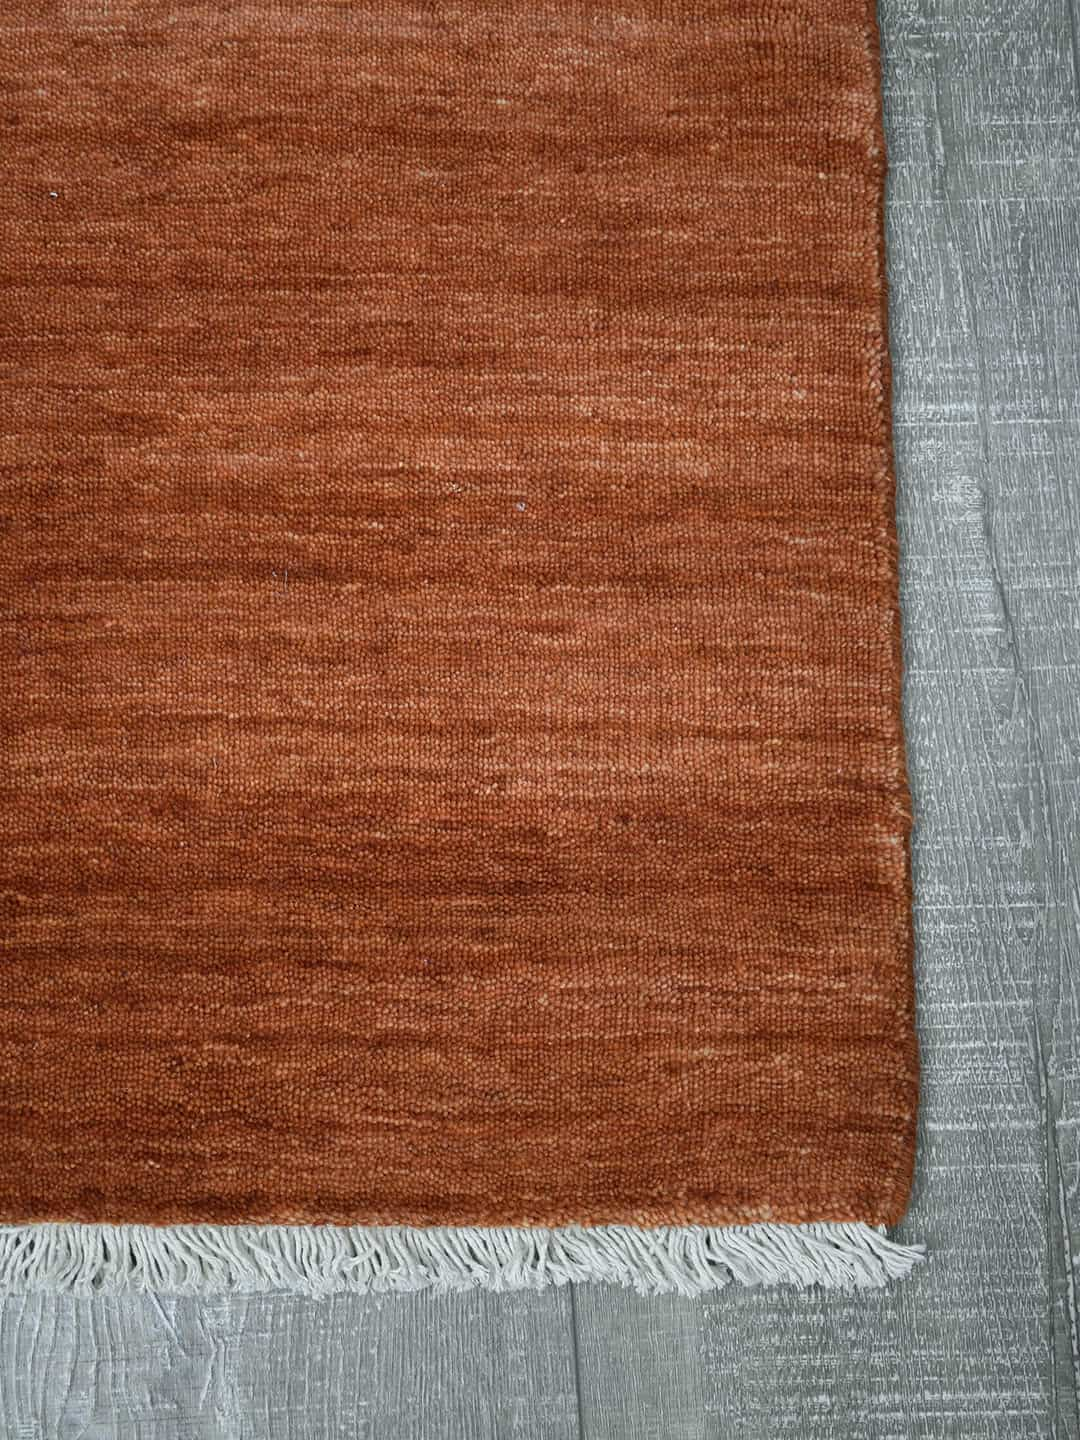 Diva-Ochre-orange-stans-rug-centre-hand loom knotted pure wool rug